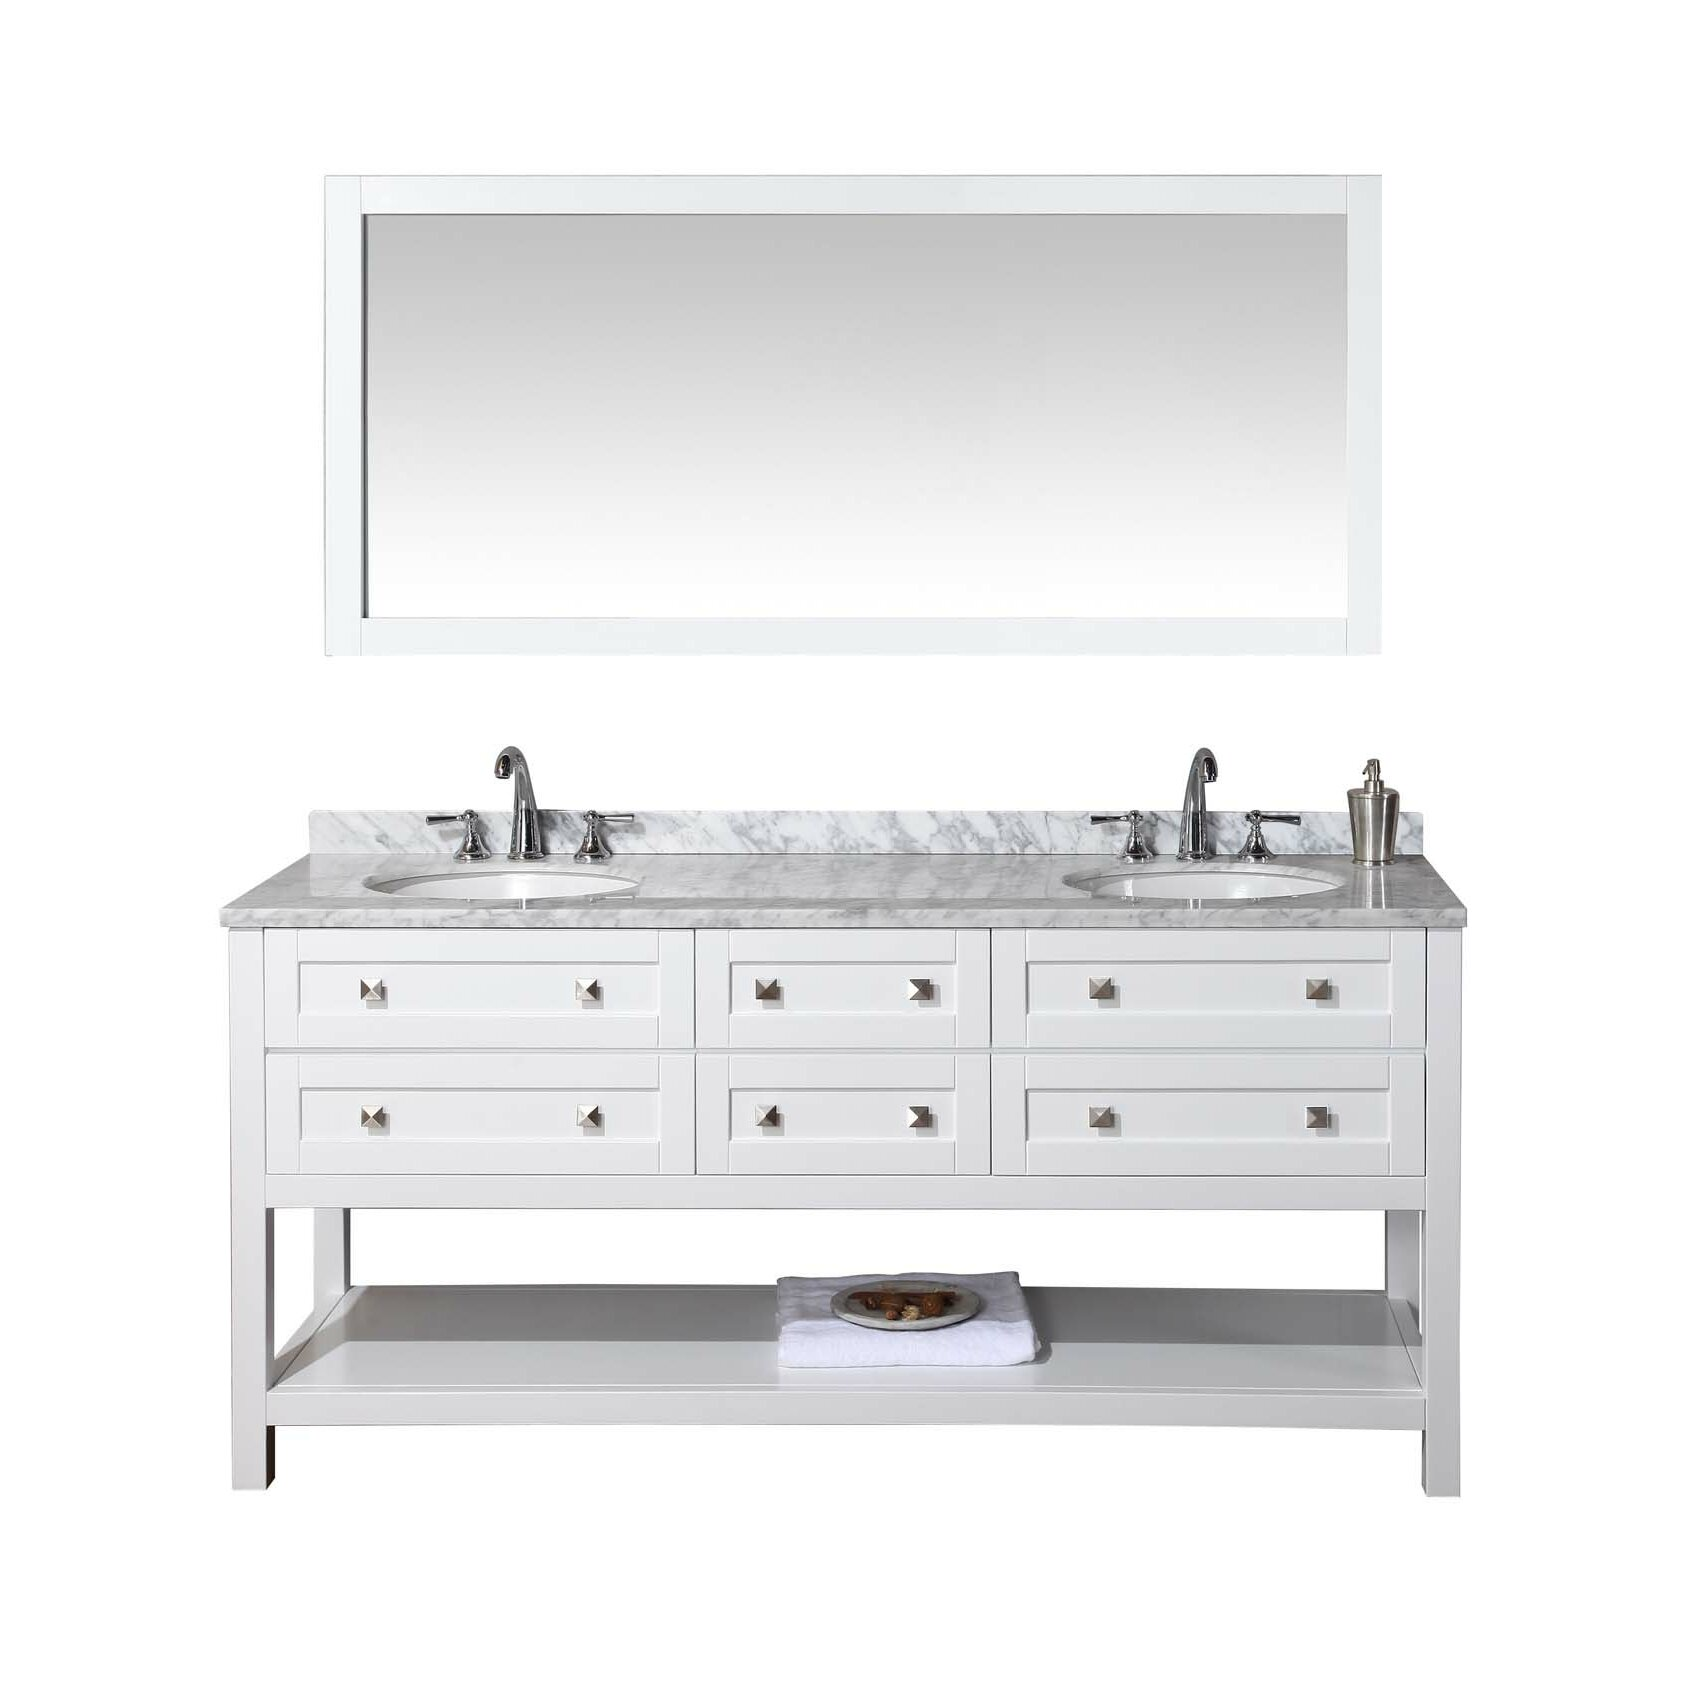 Dcor Design Albia 72 Double Bathroom Vanity Set With Mirror Reviews Wayfair